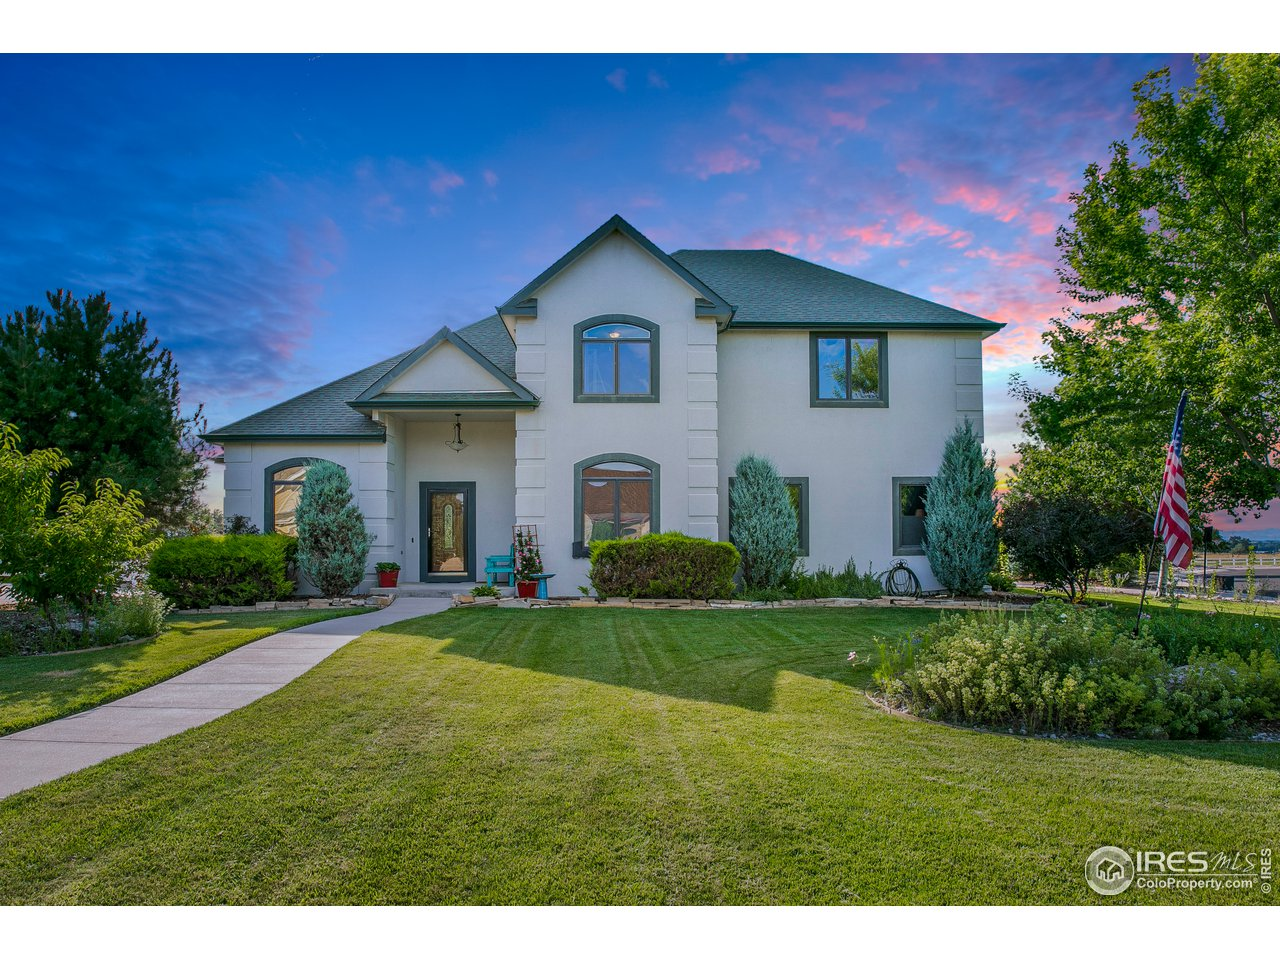 4817 Country Farms Dr, Windsor CO 80528